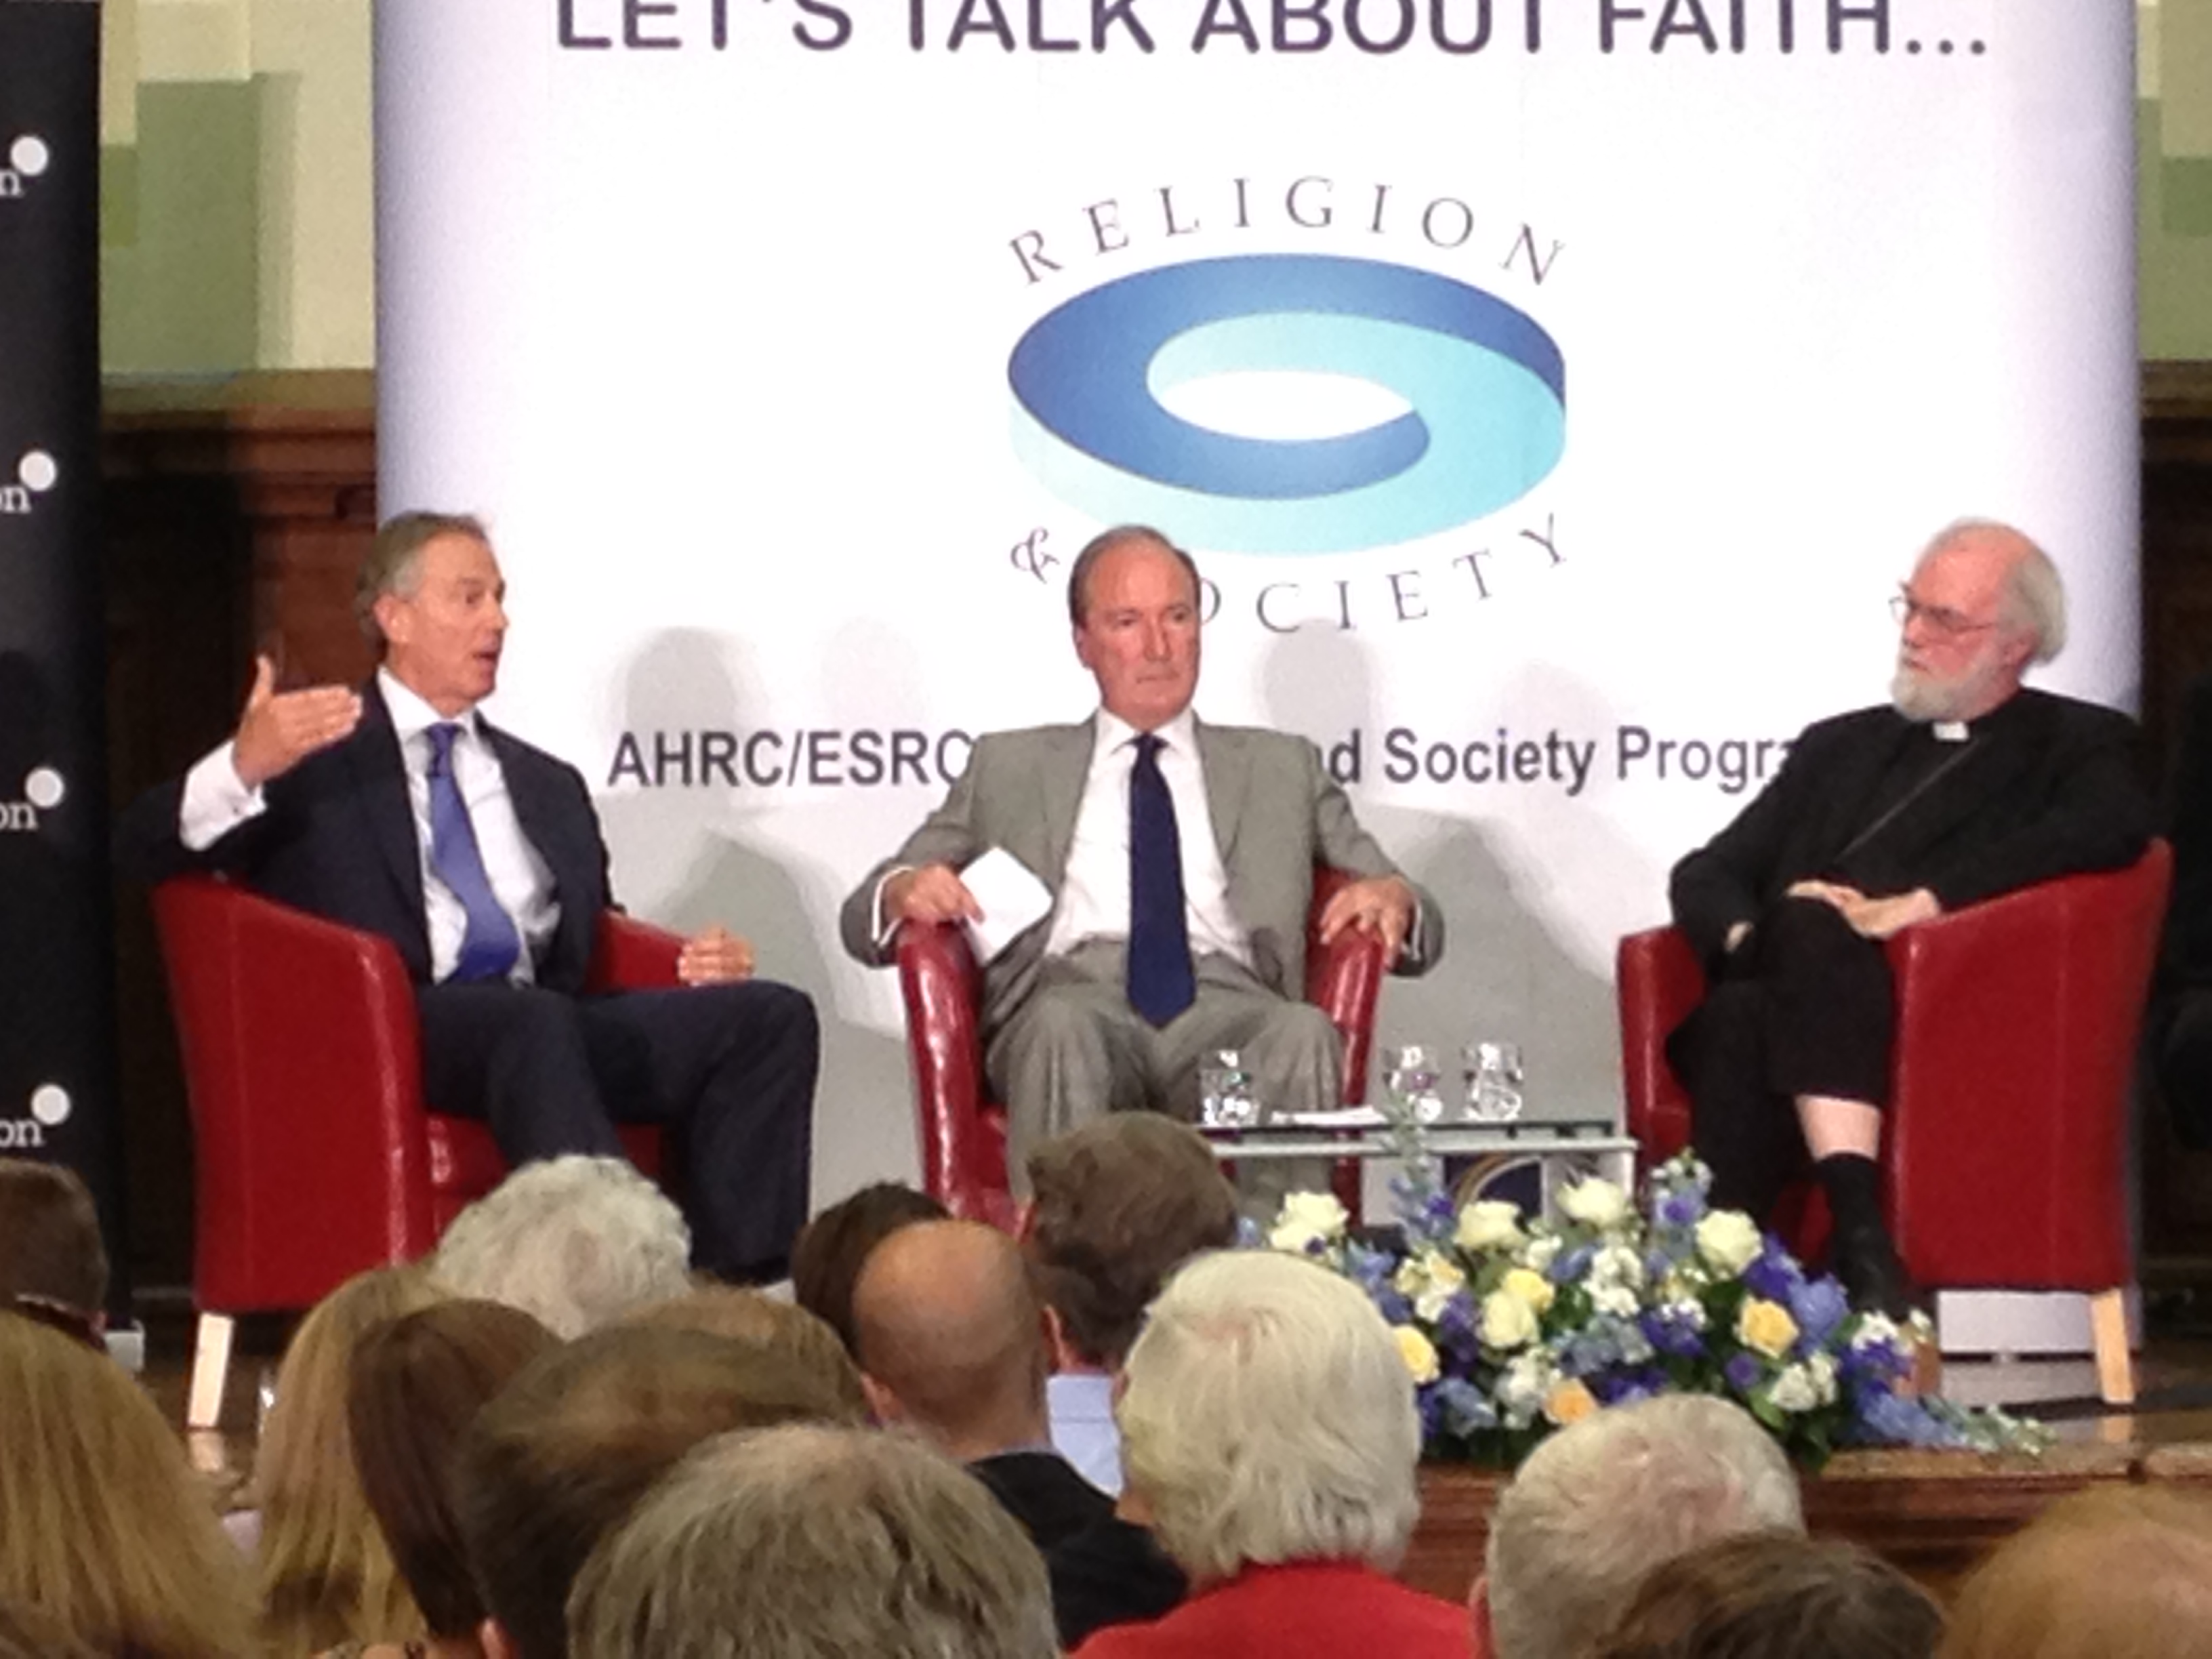 Tony Blair talks faith in public life